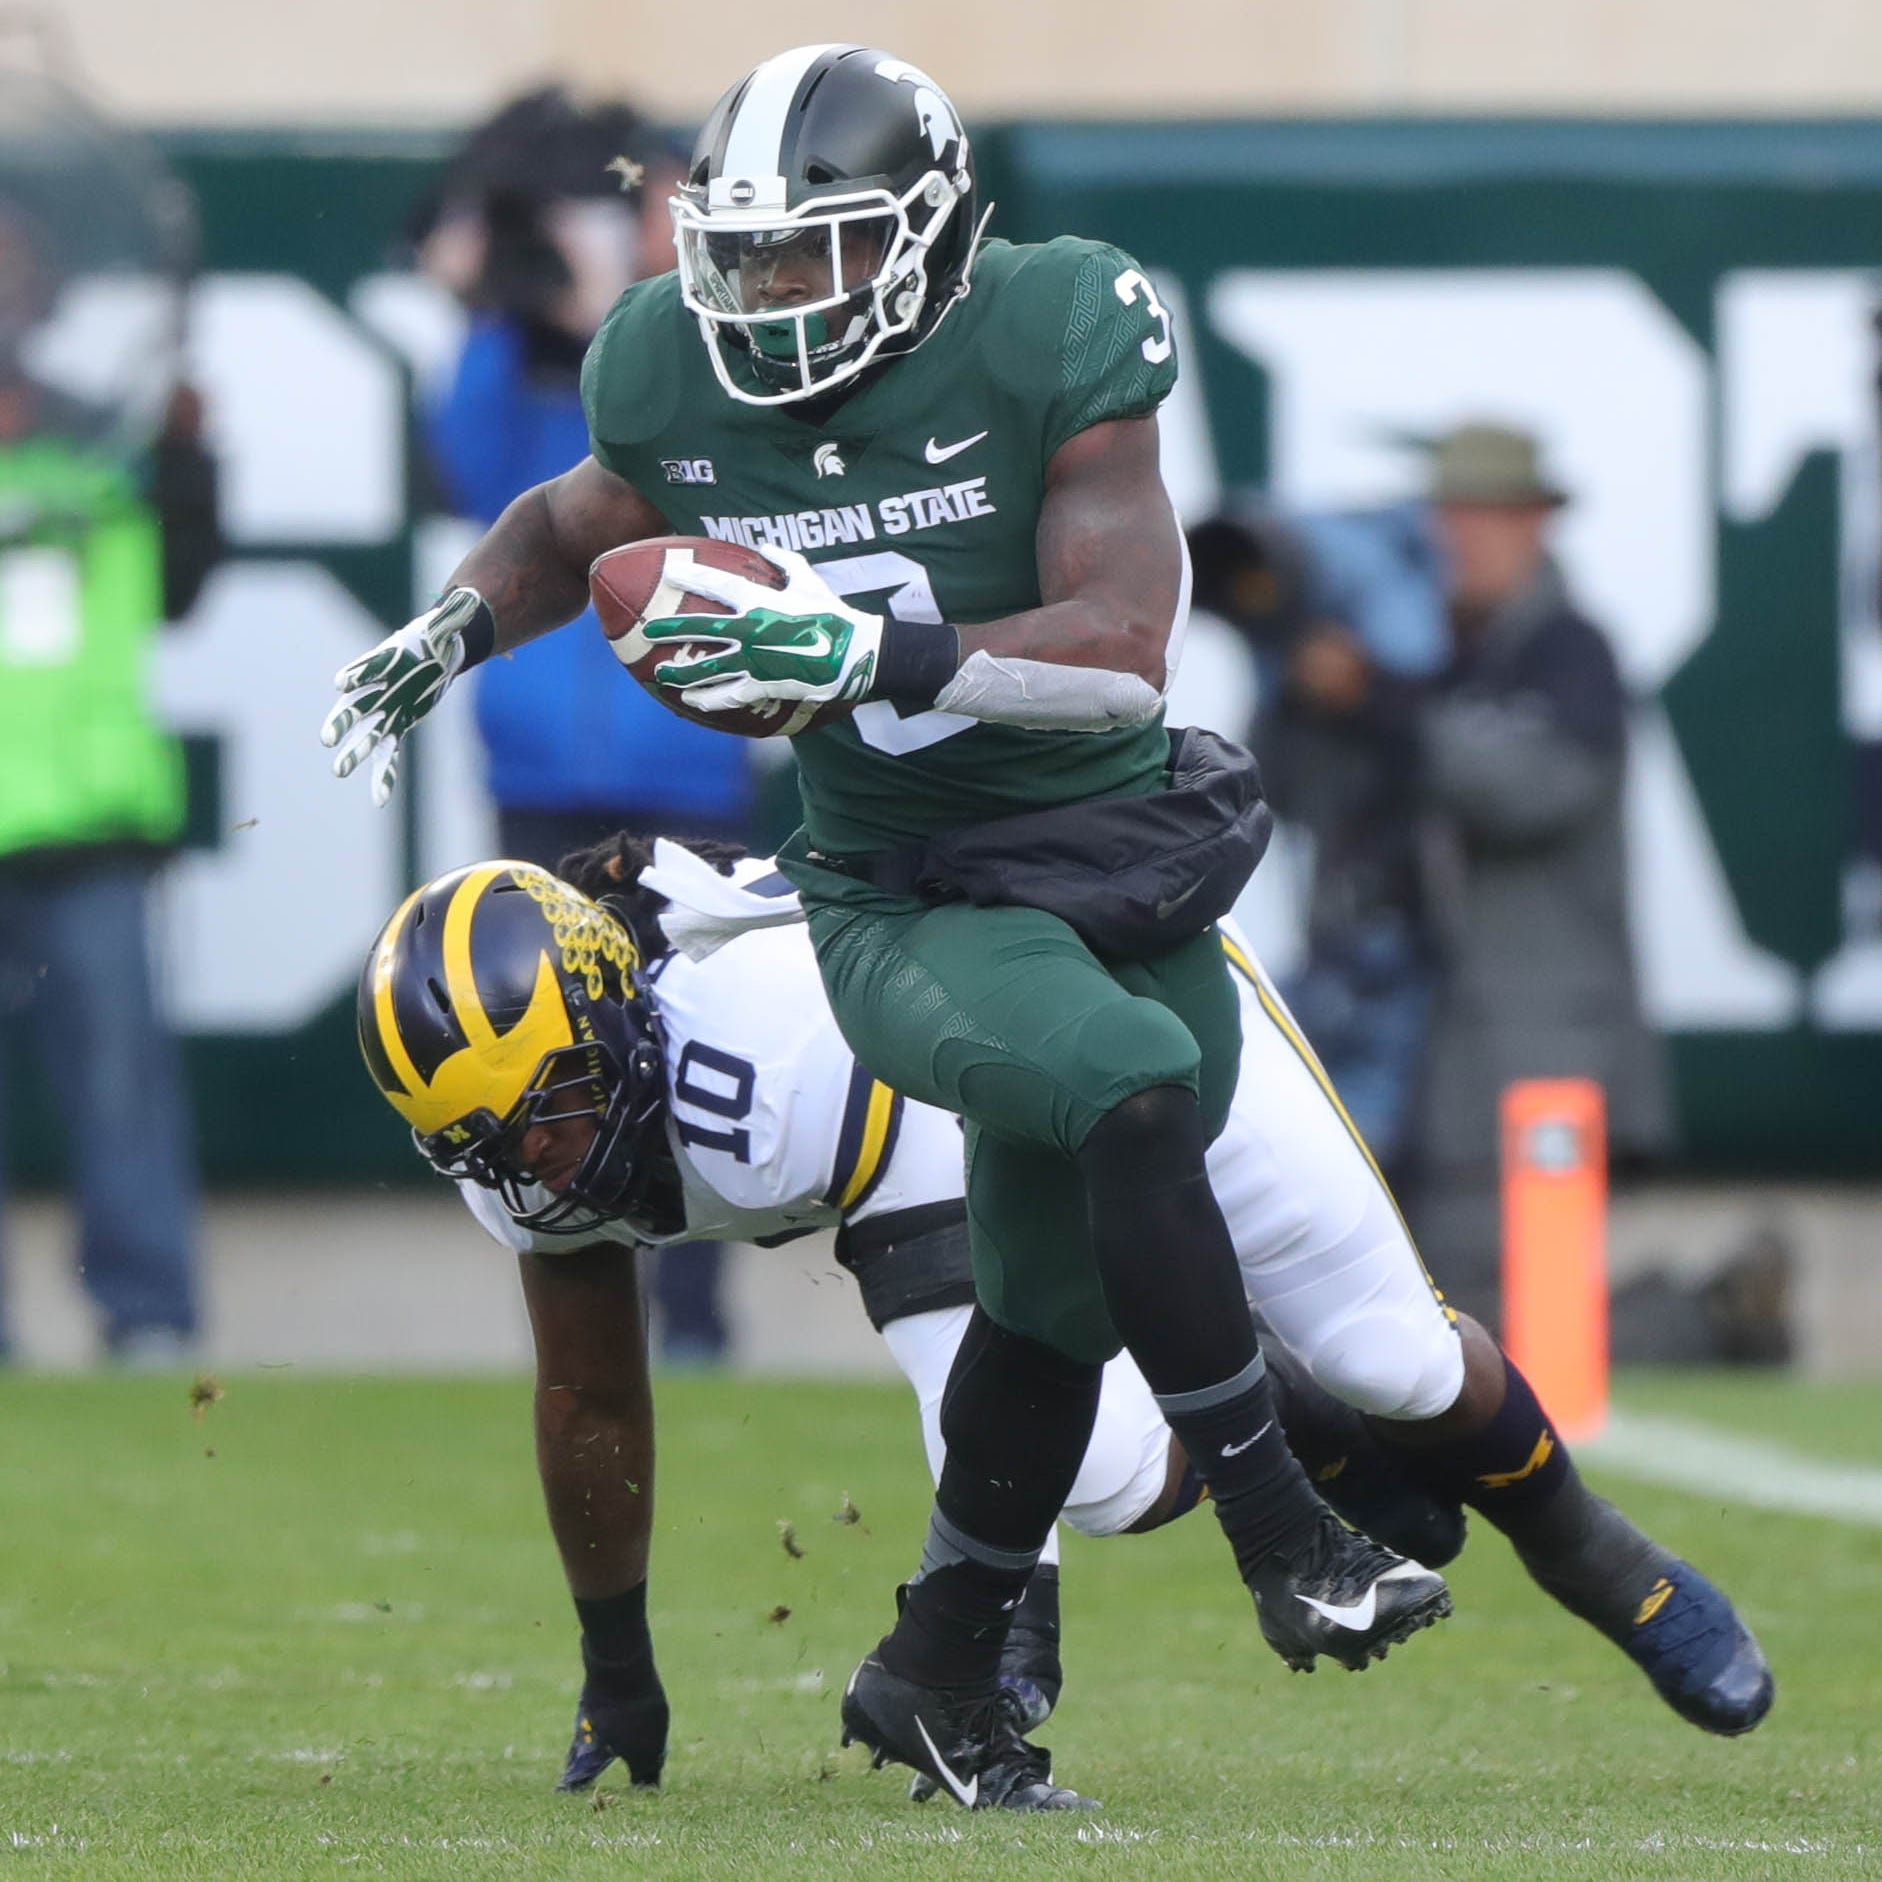 Michigan State football's LJ Scott signed by Cleveland Browns